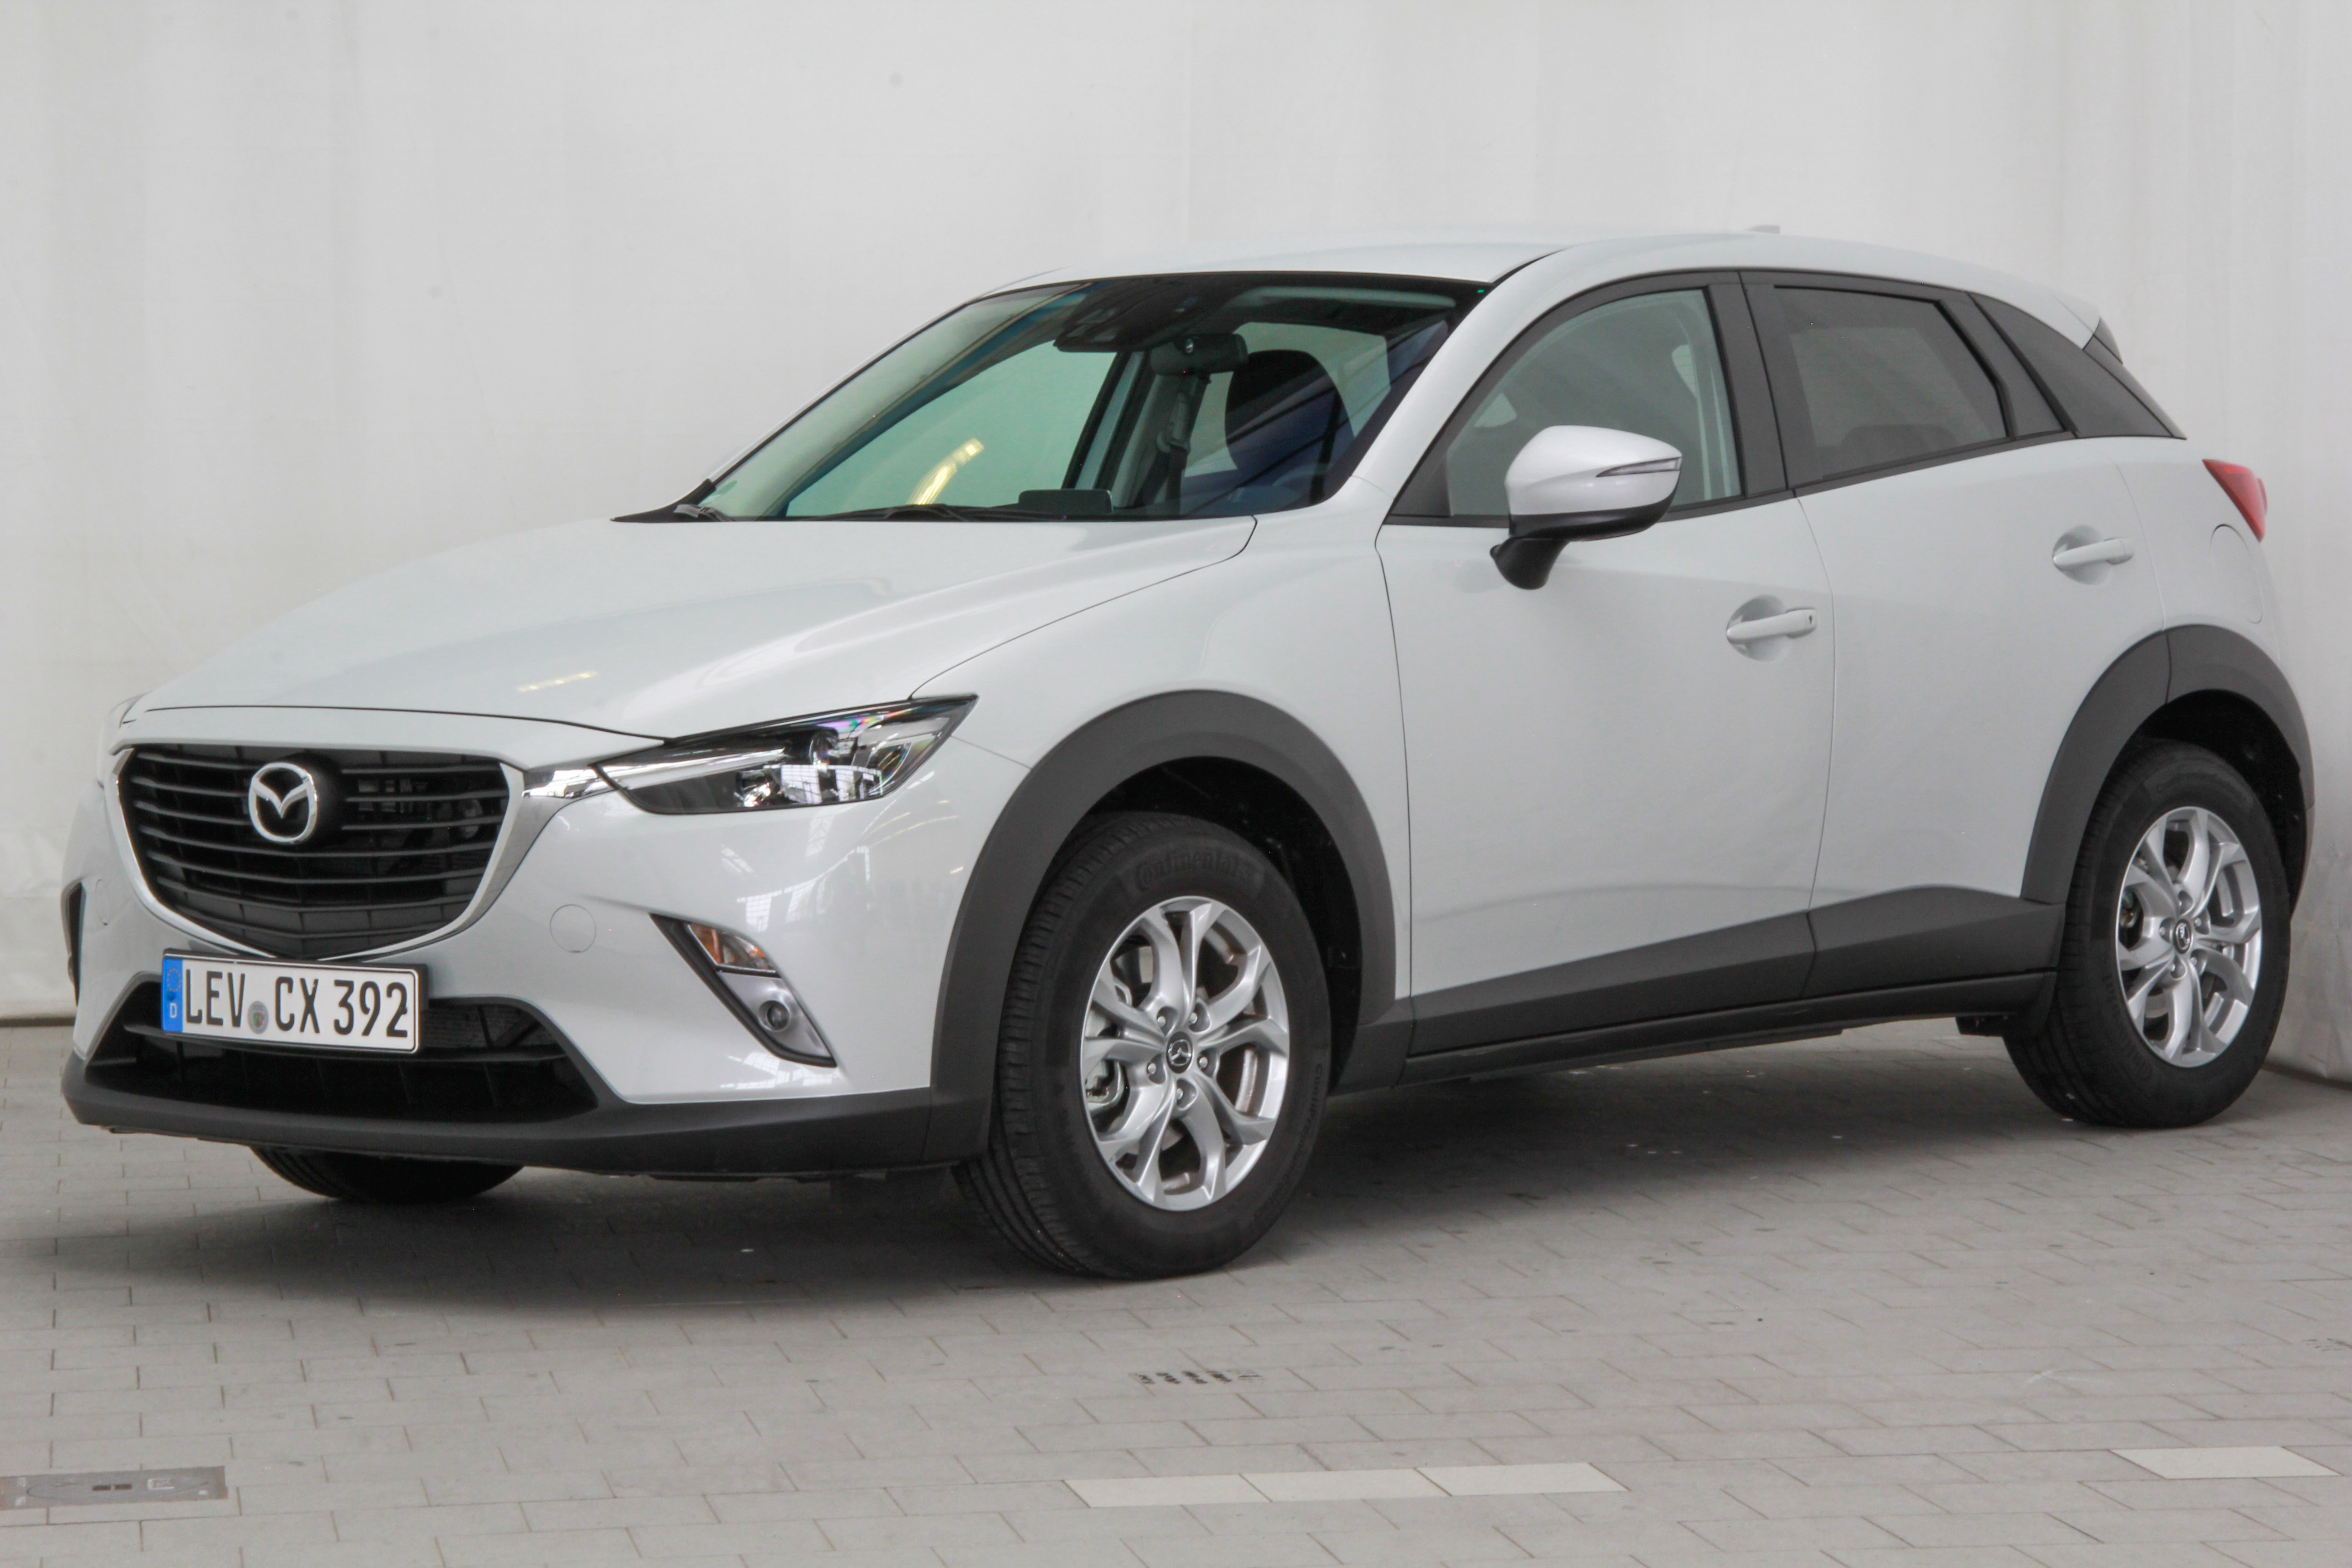 mazda cx 3 test prijzen en specificaties. Black Bedroom Furniture Sets. Home Design Ideas